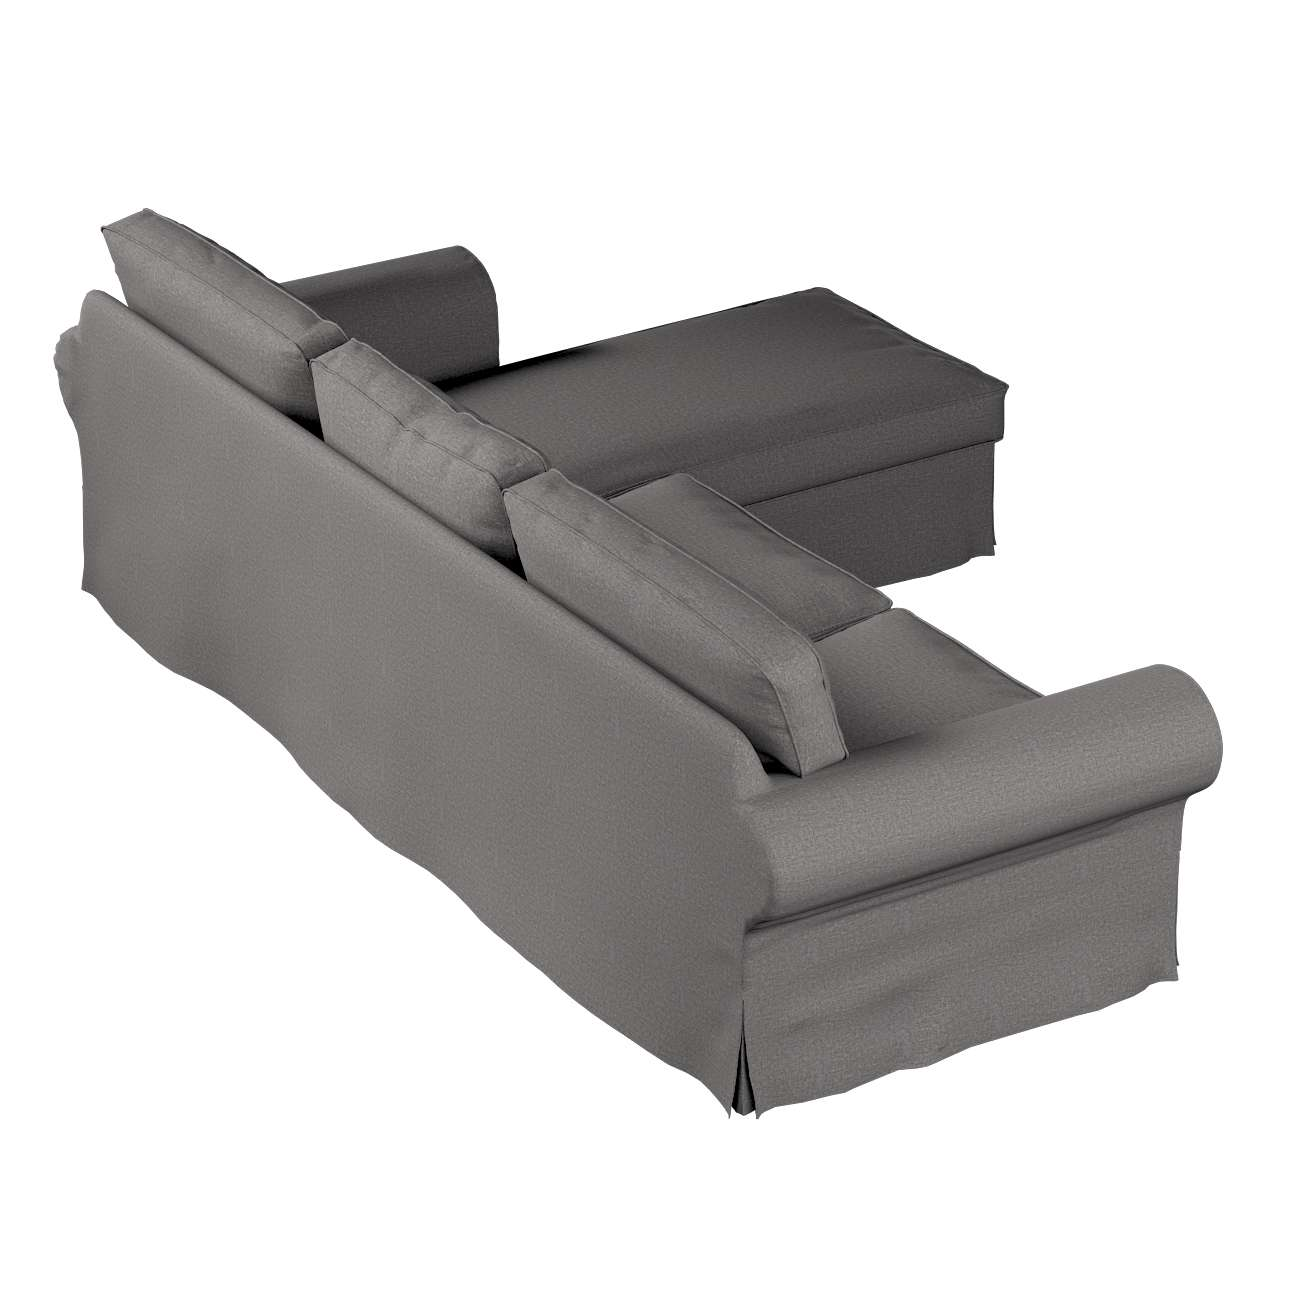 Ektorp 2 seater sofa with chaise longue cover grey for 2 seater chaise sofa for sale